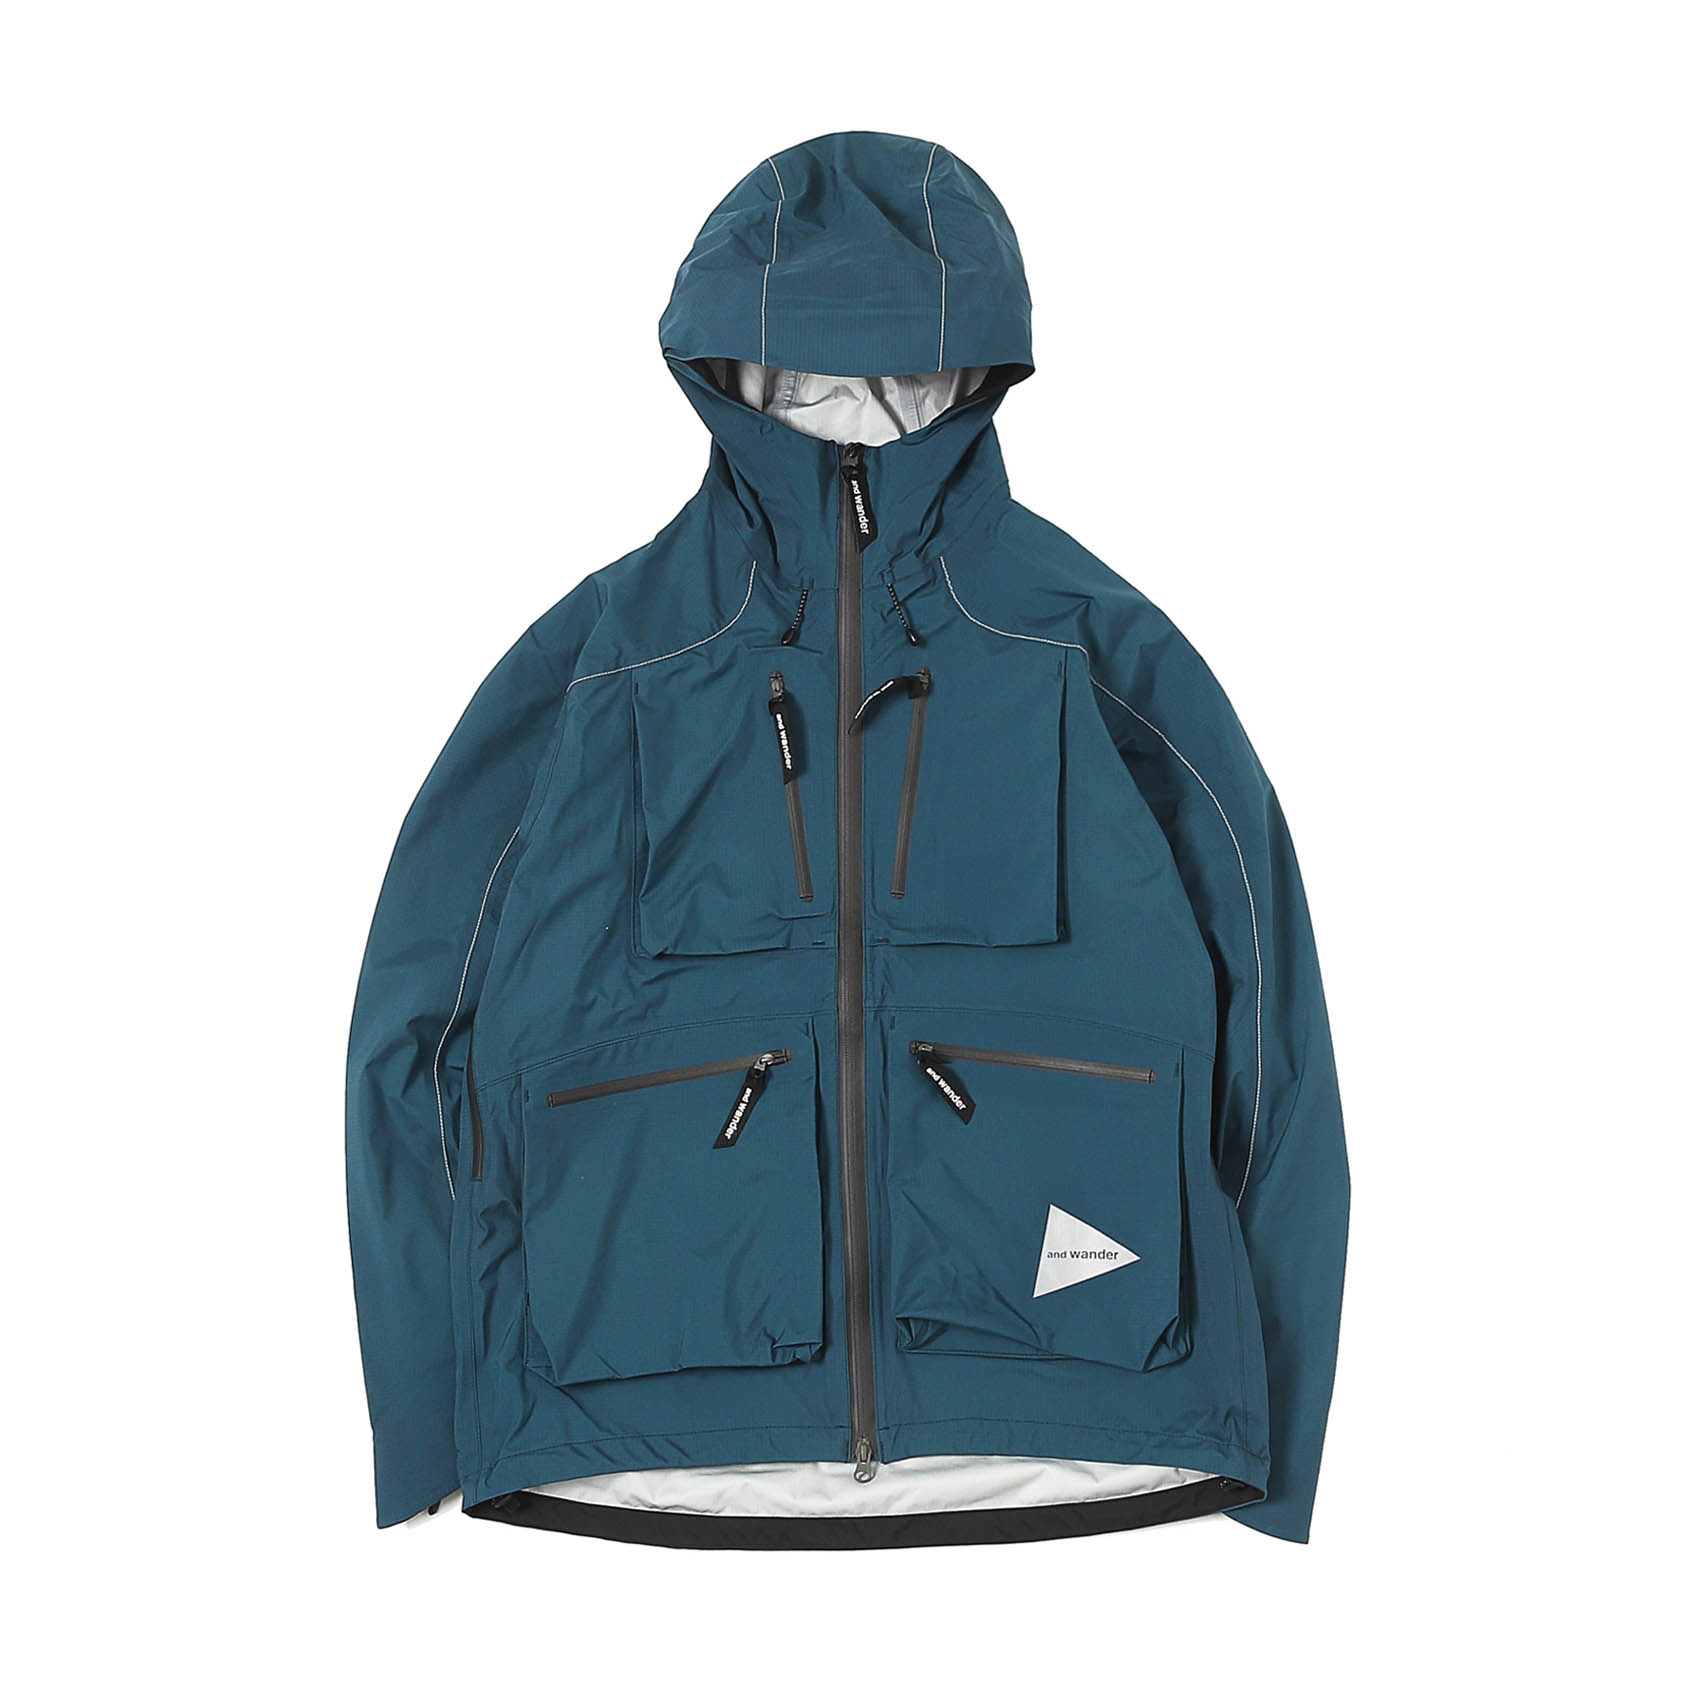 EVENT DROPPING POCKET RAIN JACKET